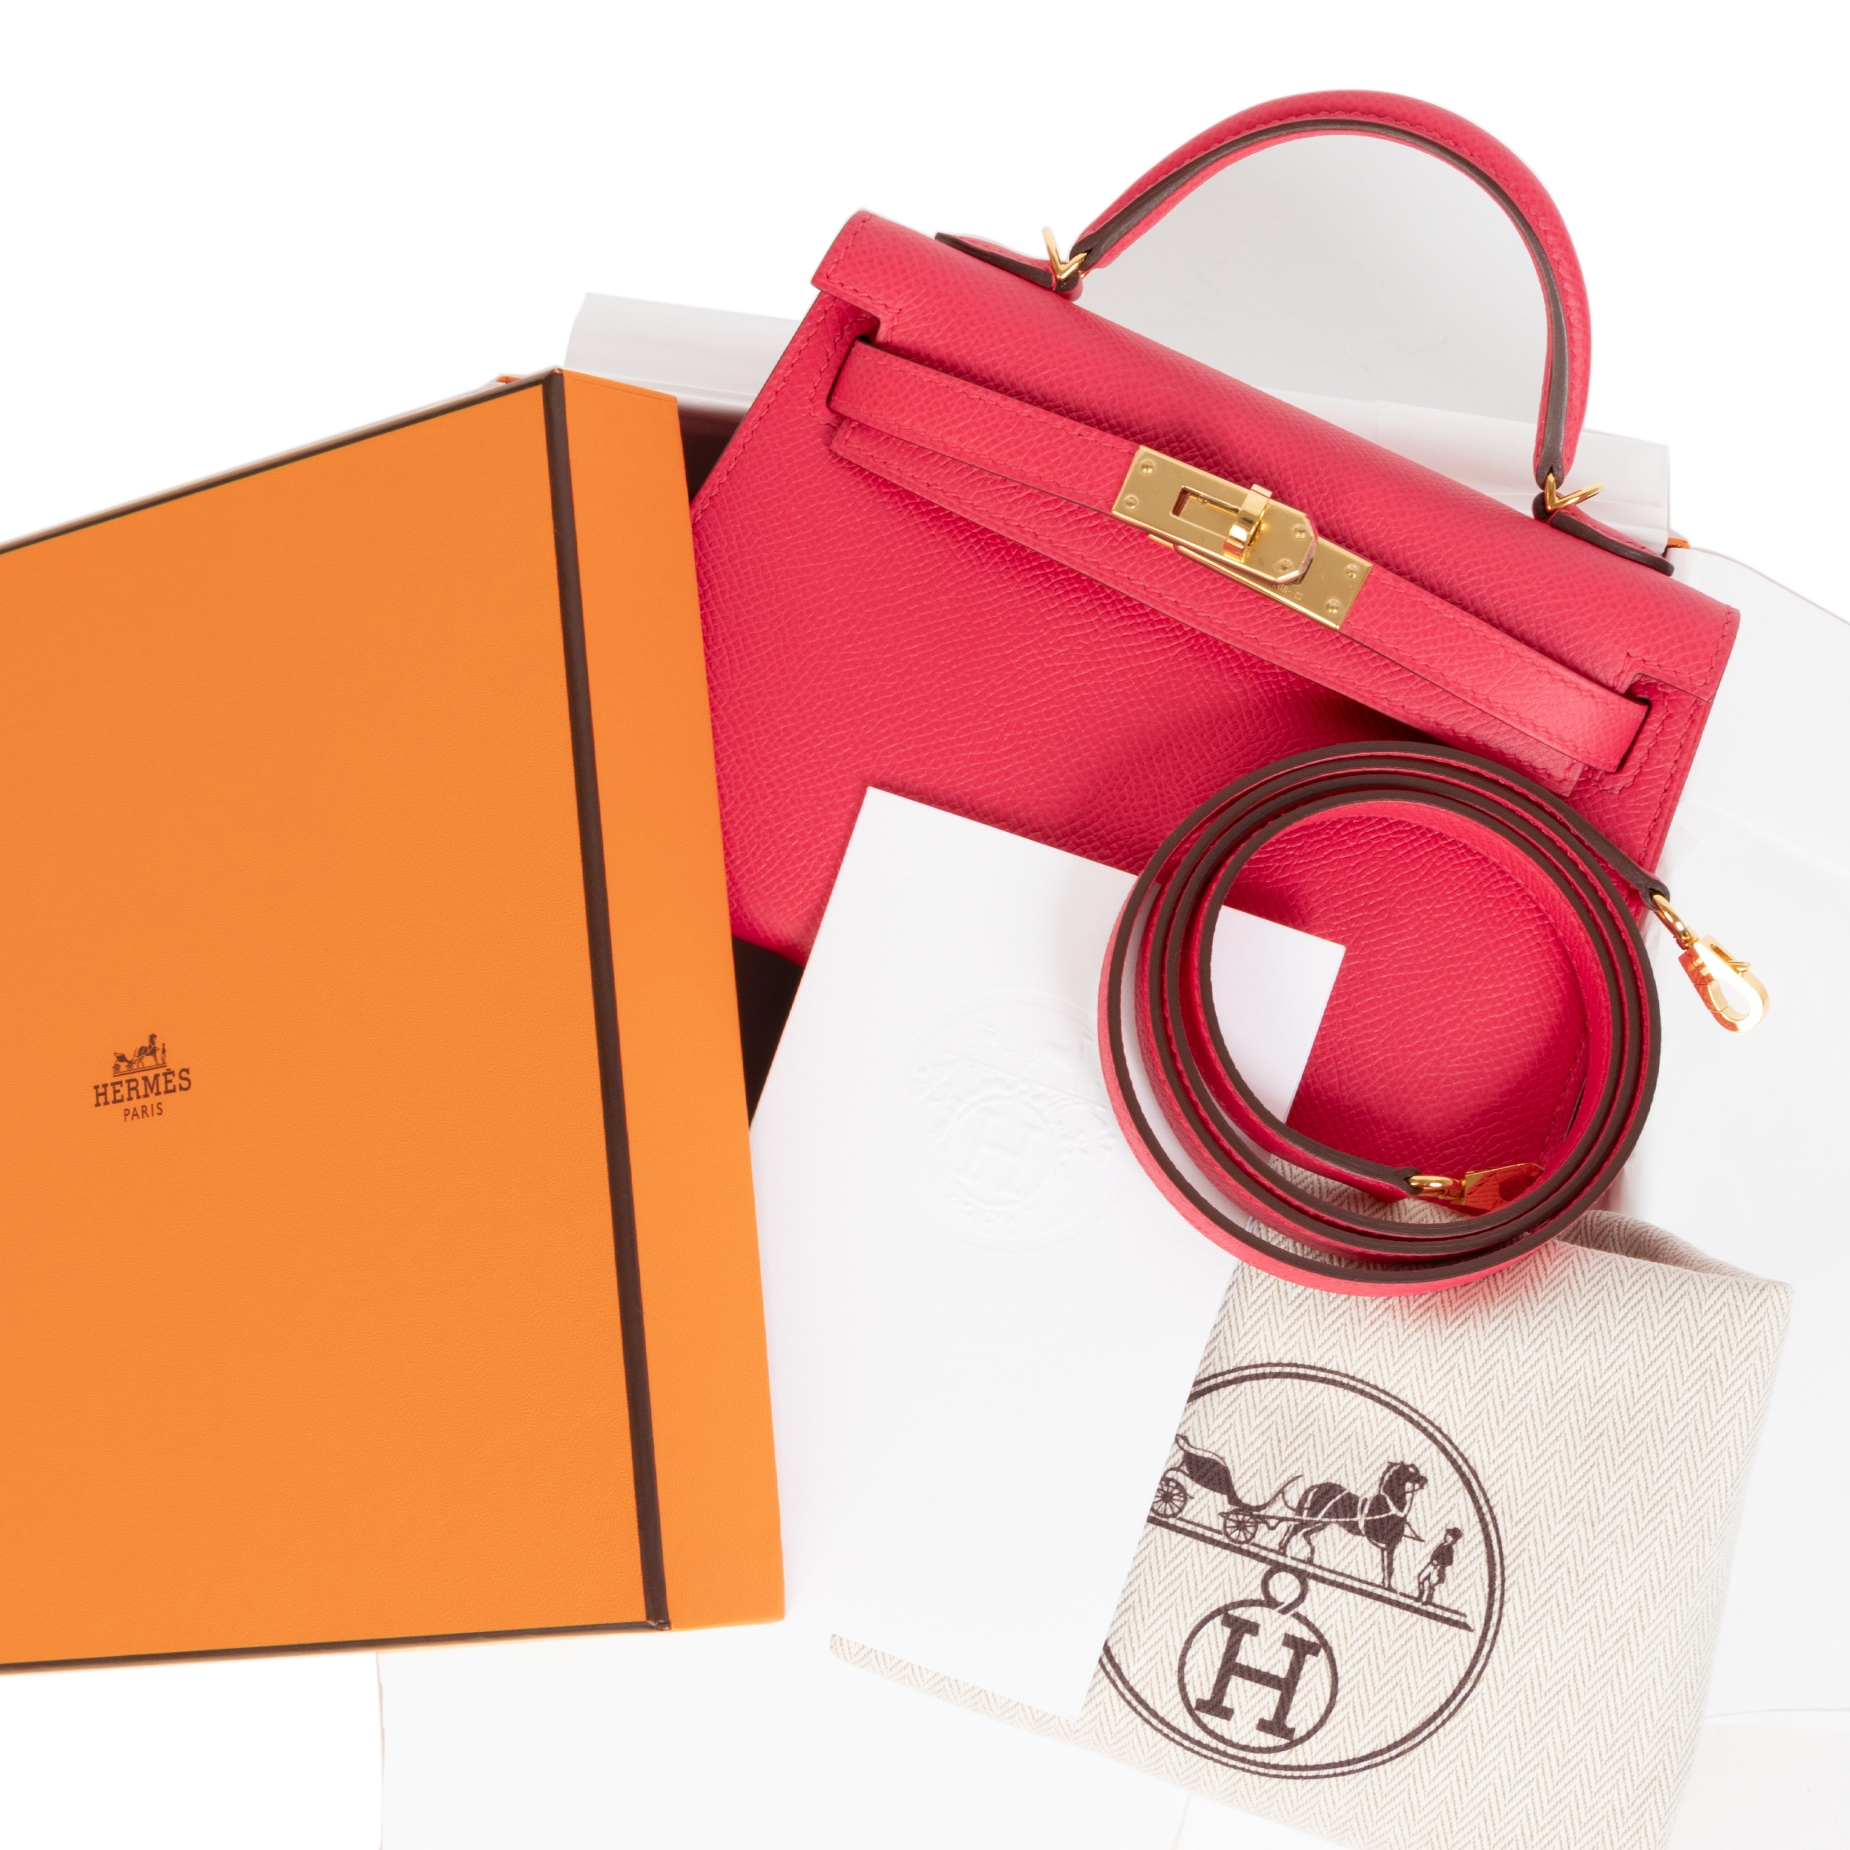 We buy an dsell your authentic Hermès Kelly II Mini Epsom Rose Extreme GHW